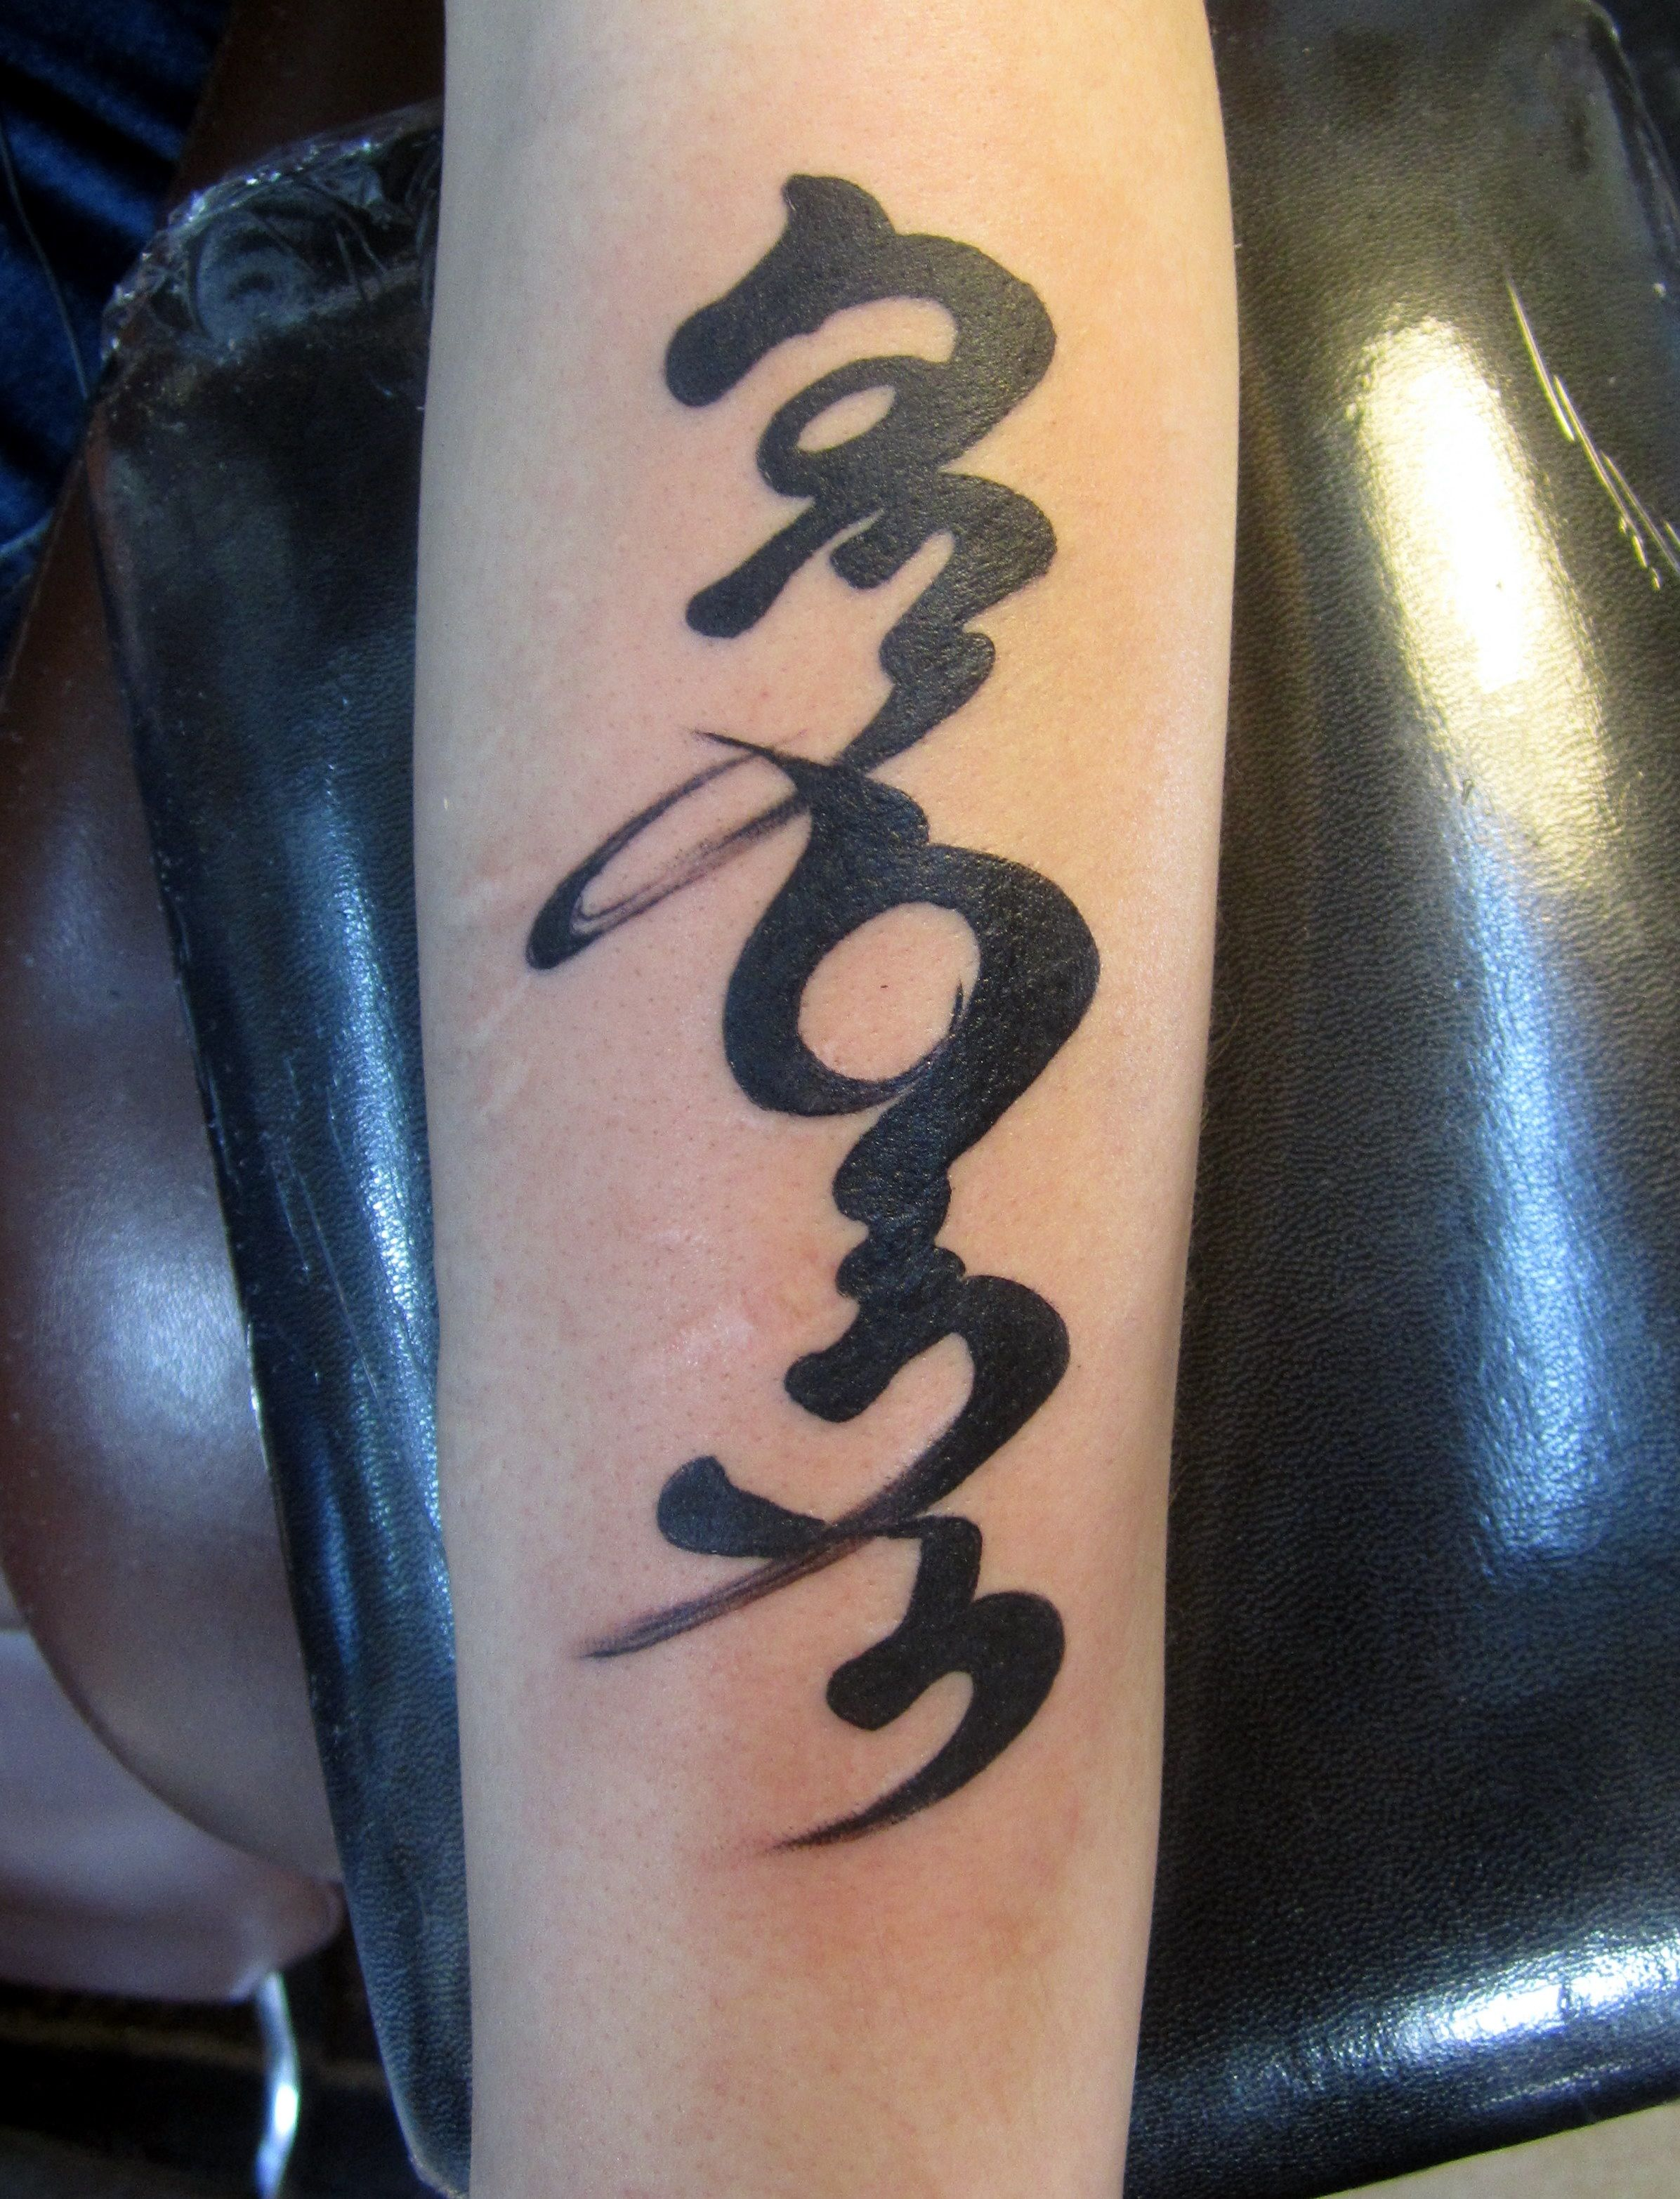 Calligraphy Tattoo Picture Blue Sky Mongolian Calligraphy Tattoo Inks That Don T Stink